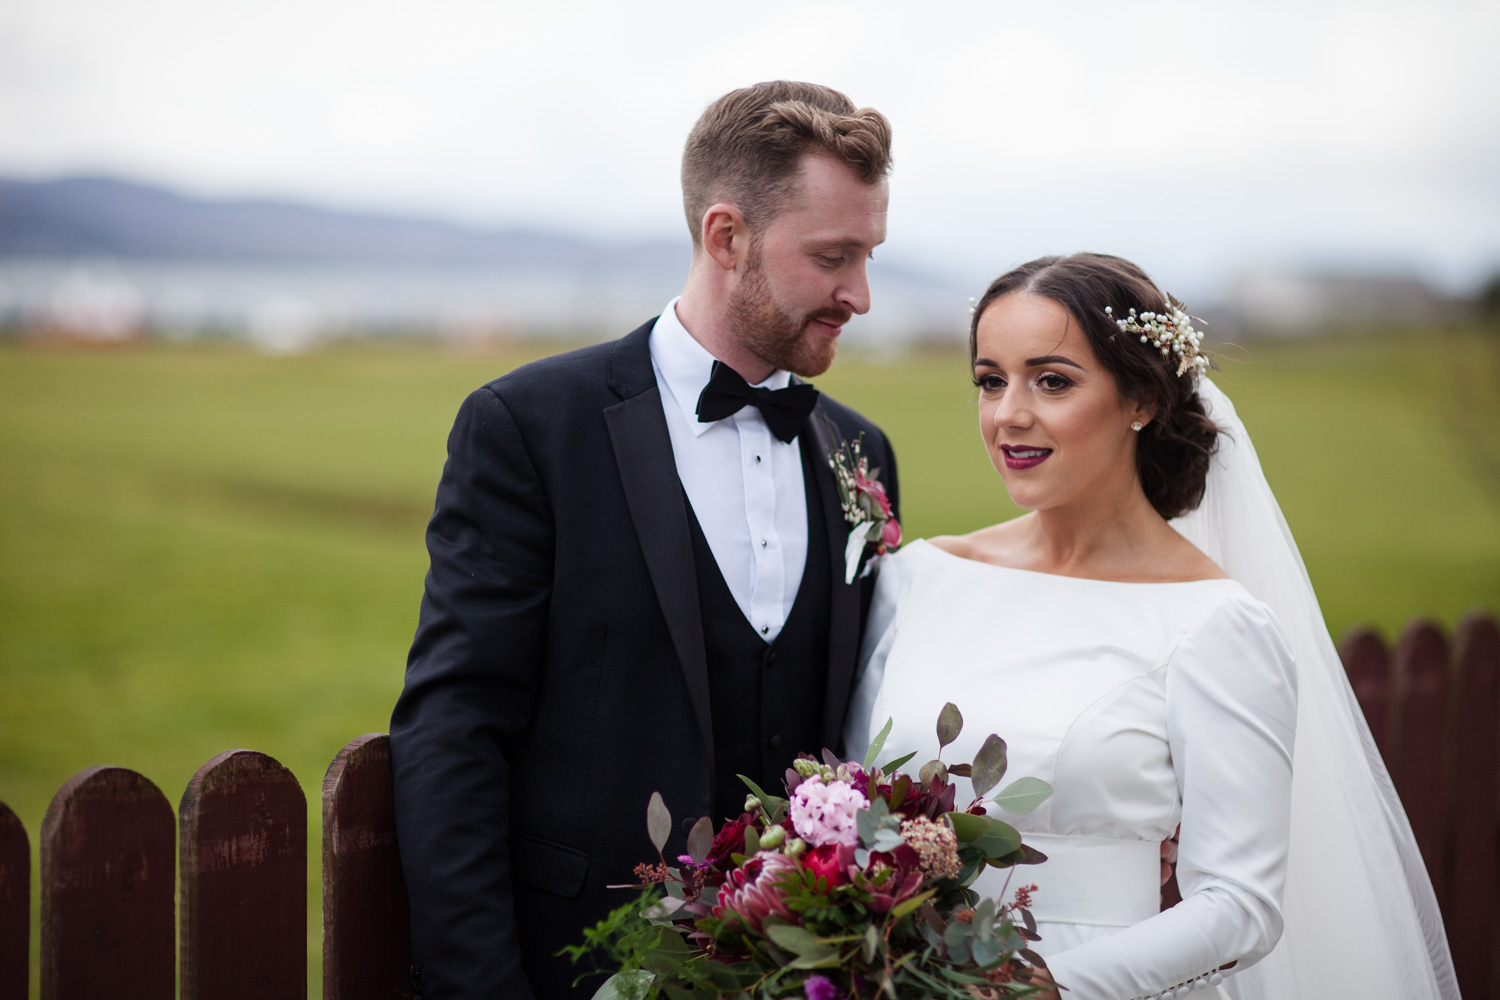 Mark_Barnes_Northern_Ireland_wedding_photographer_Innishowen_Gateway_Donegal_Wedding_photography_Donegal_wedding_photographer-45.jpg